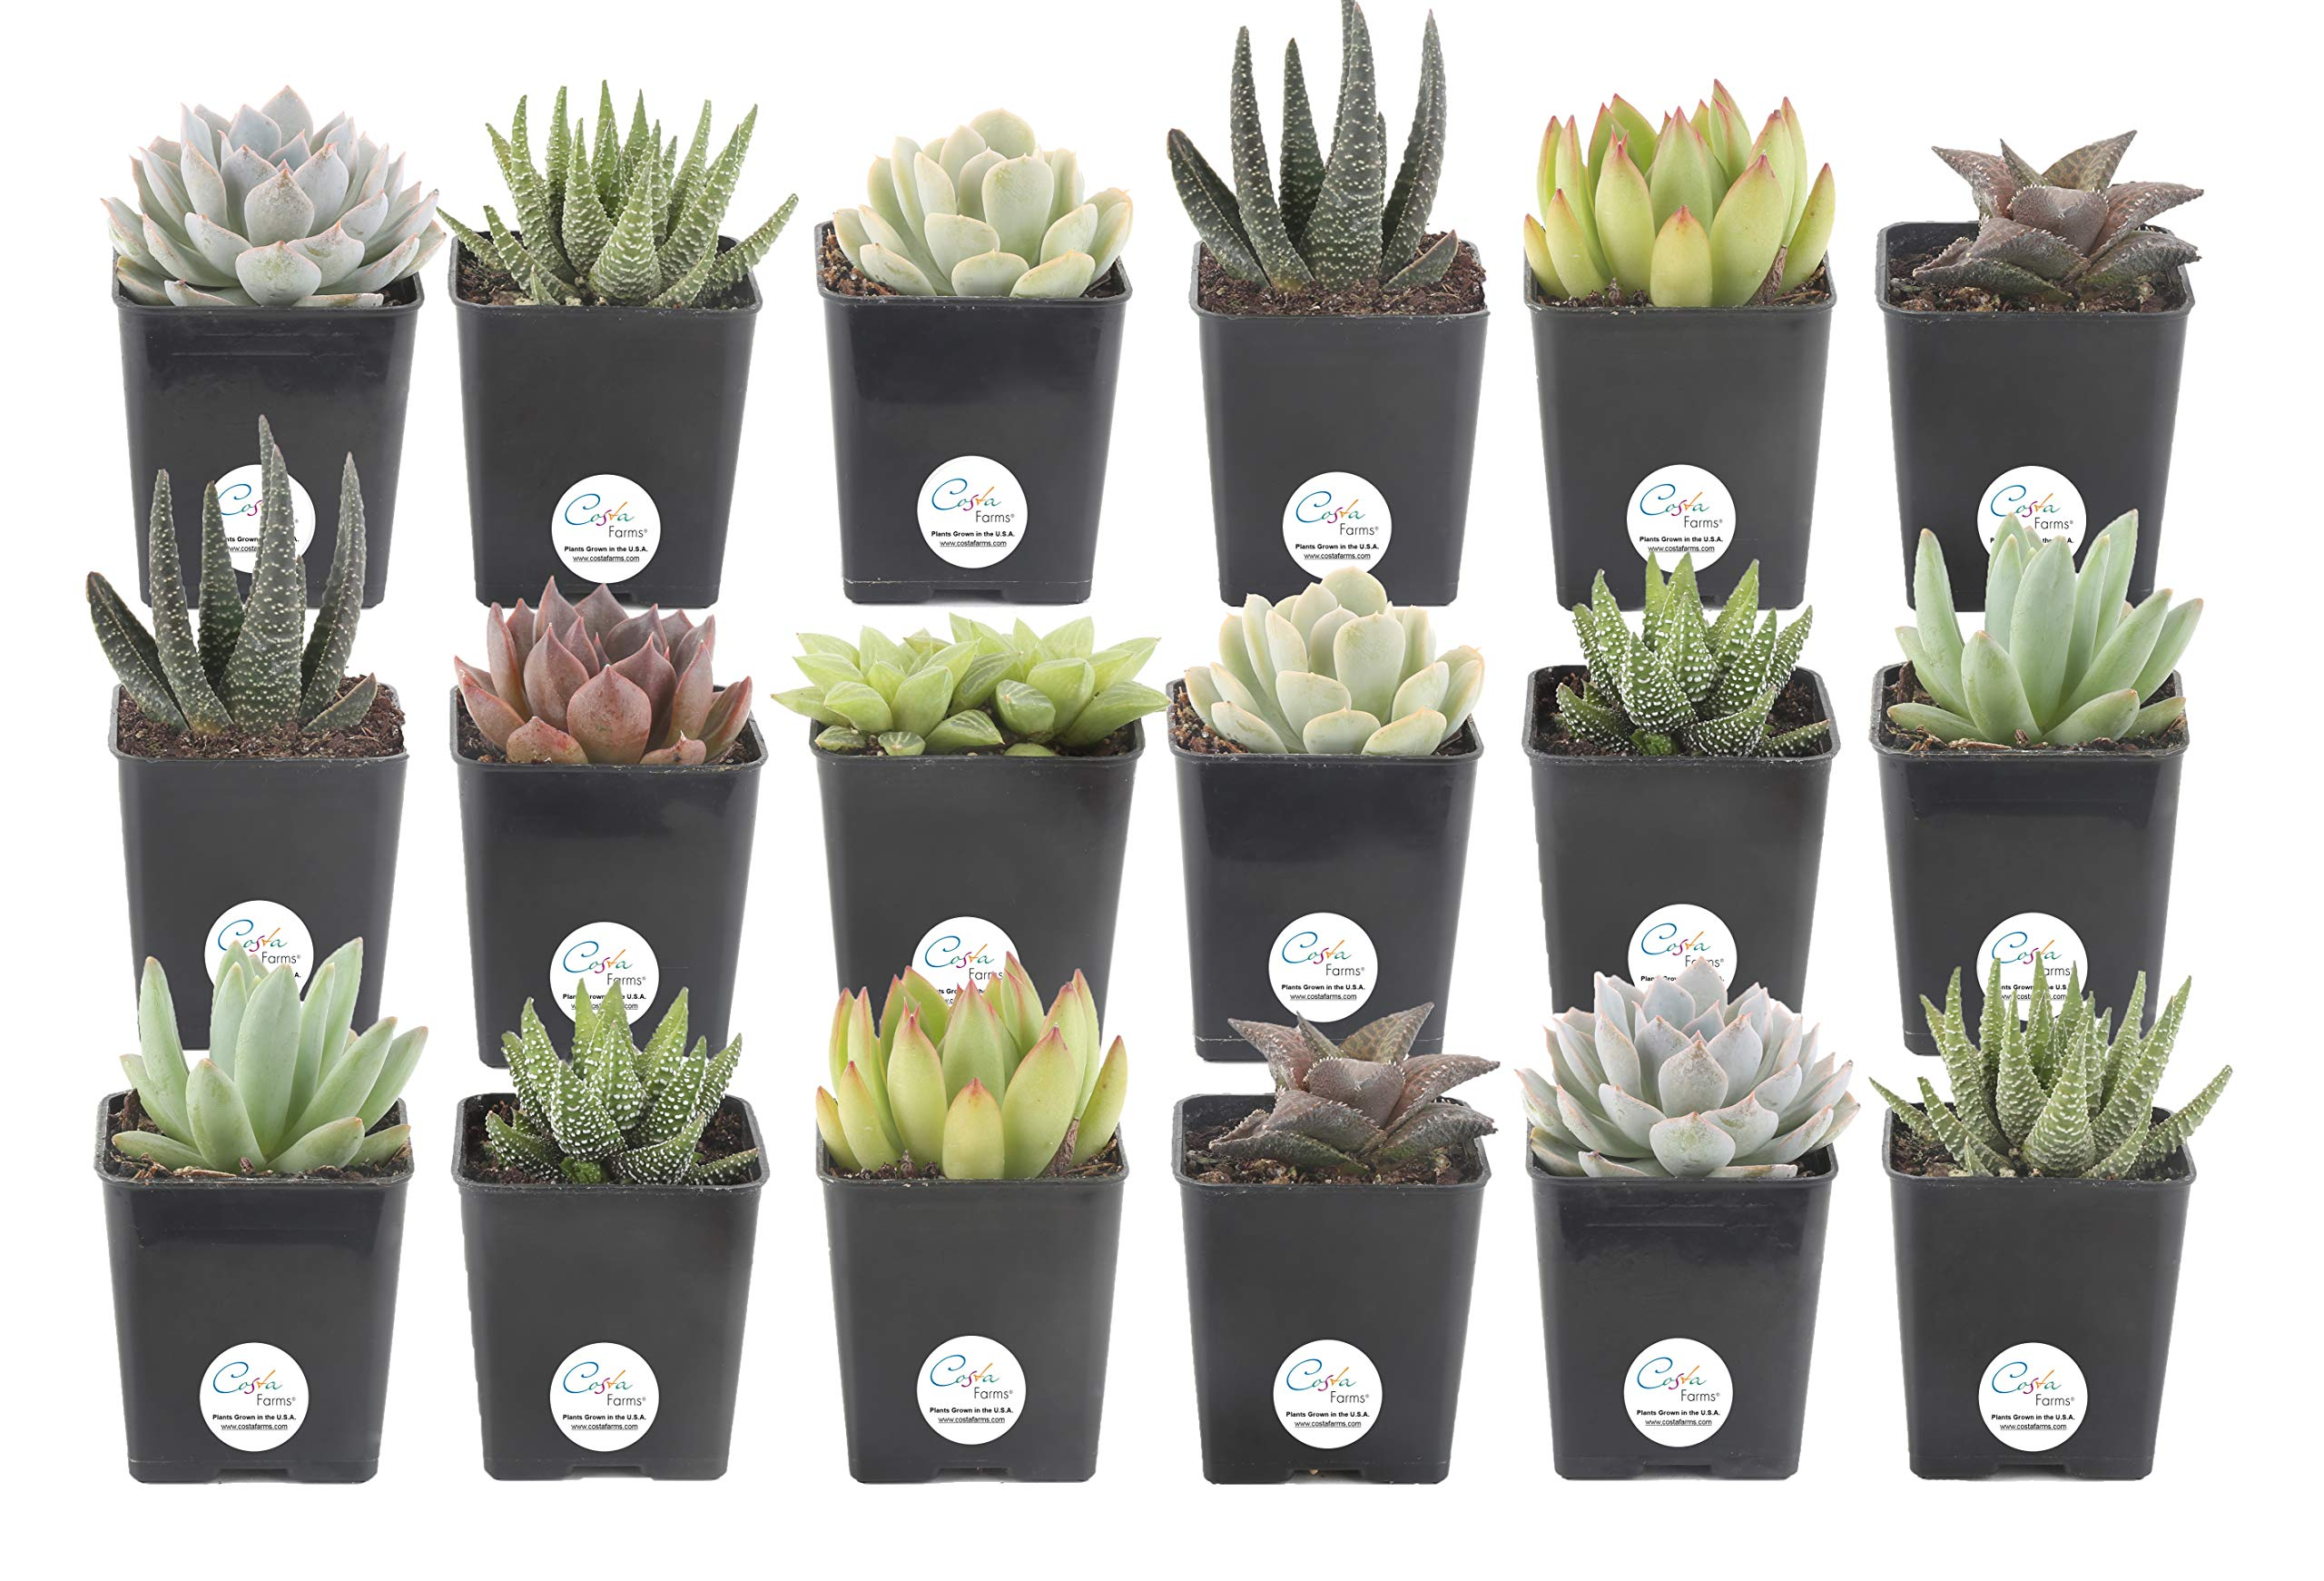 Costa Farms Jumbo-Mini Haworthia - Echeveria Live Succulent Plants, Grower Choice Assortment, Fully Rooted, Ships in 2.5-Inch Grower Pot, 18-Pack, Fresh From Our Farm by Costa Farms